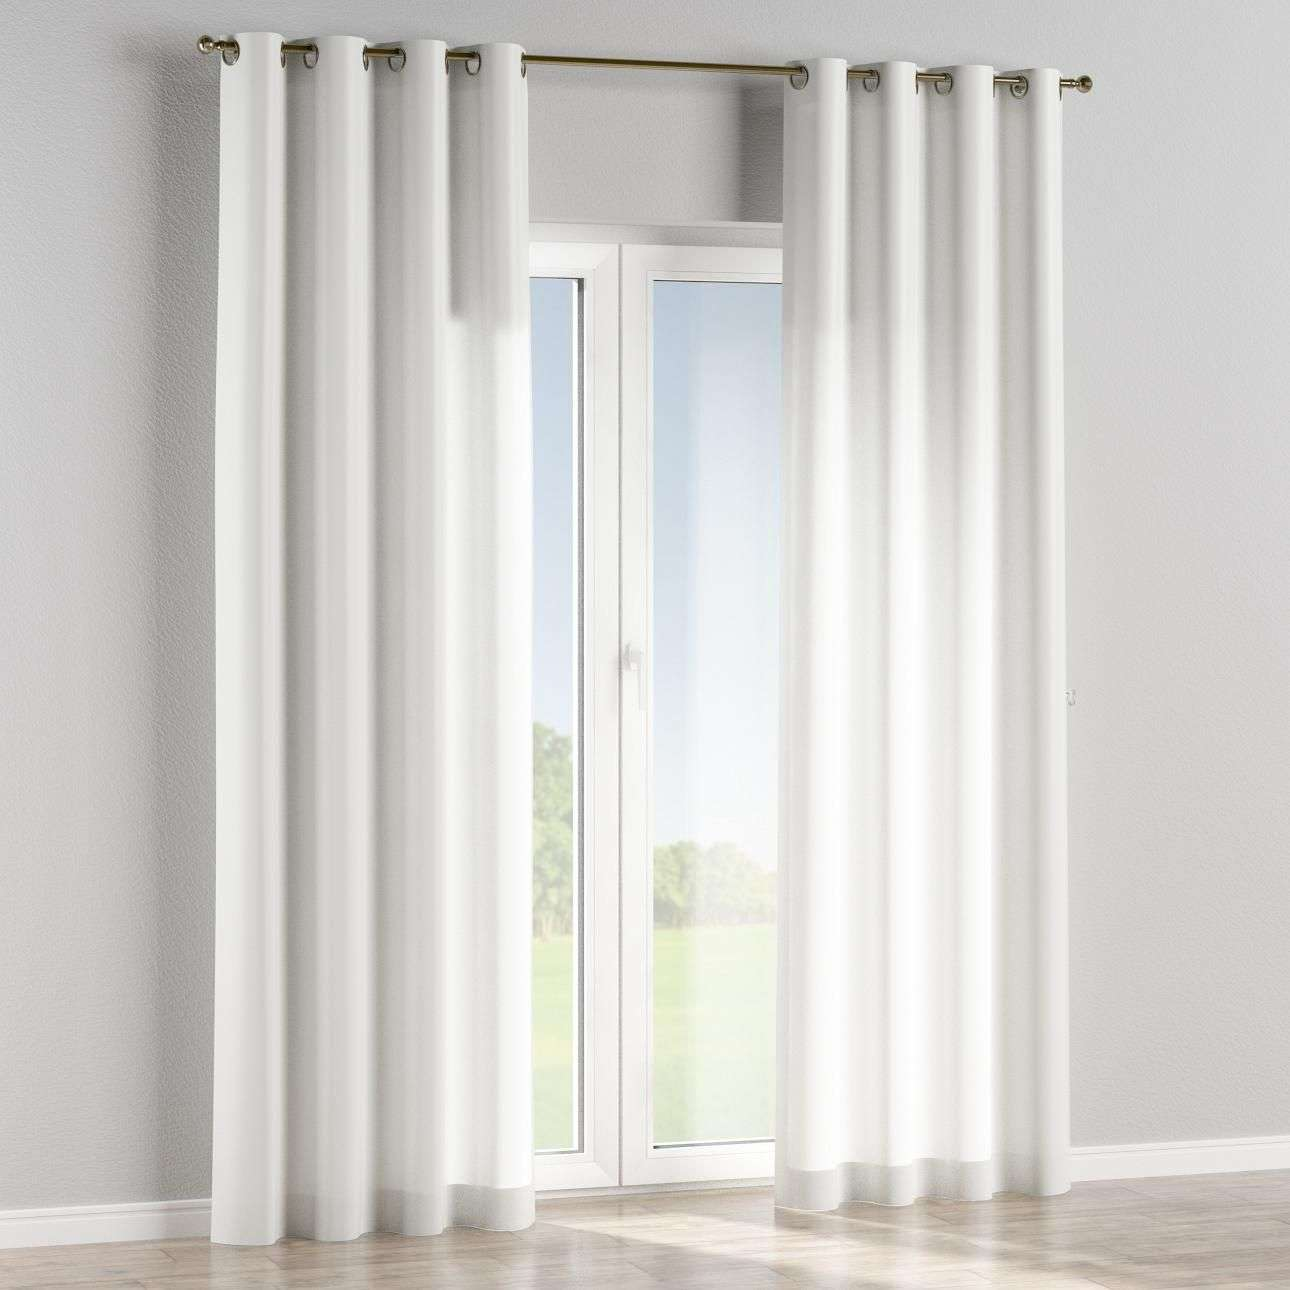 Eyelet curtains in collection Mirella, fabric: 140-40